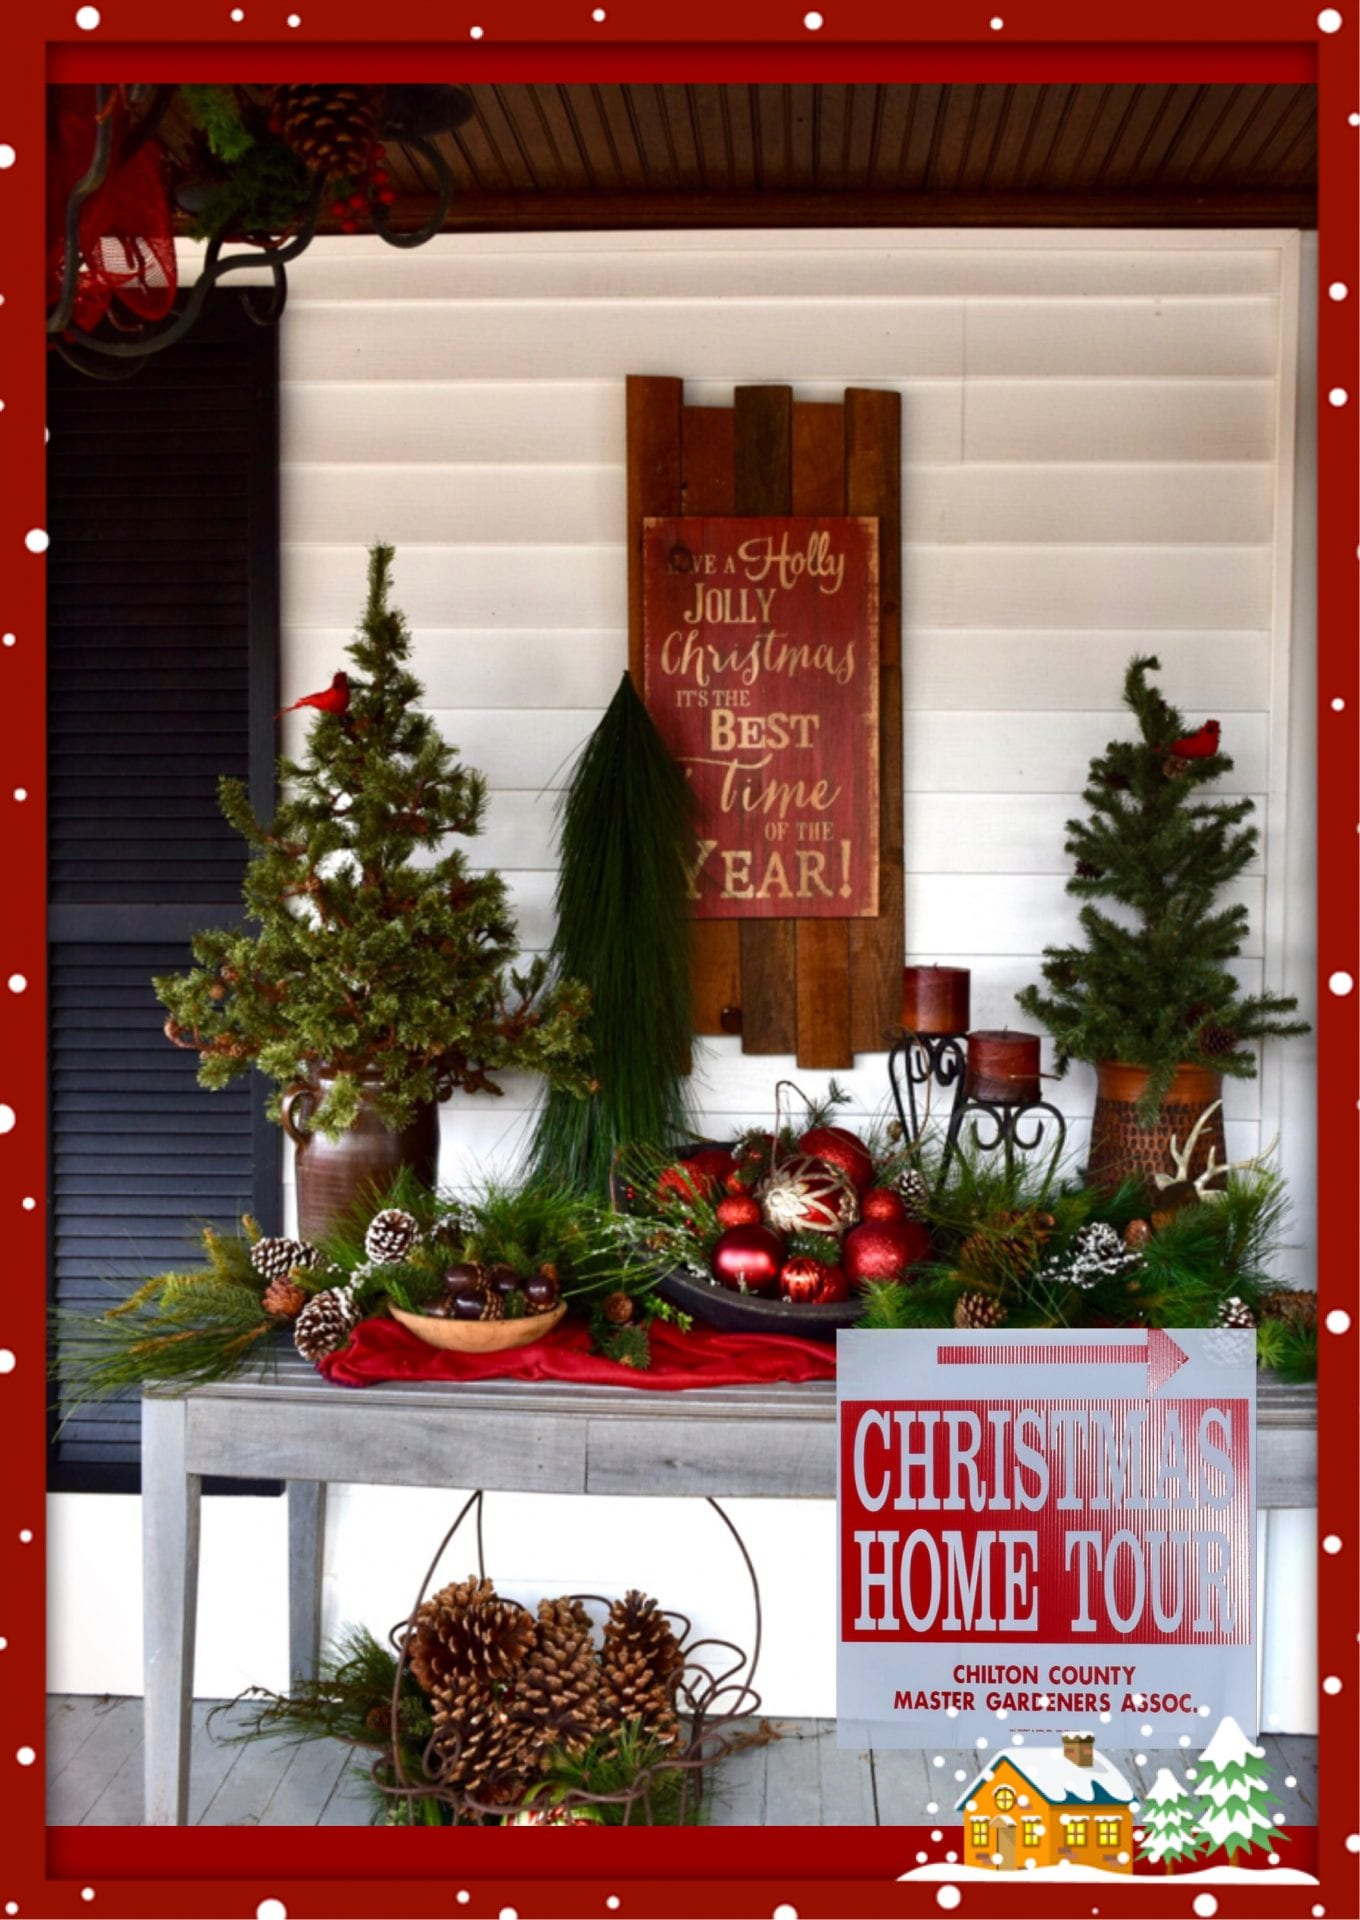 Decorations on porch if Pat Barefield Home 2019 Christmas Home Tour